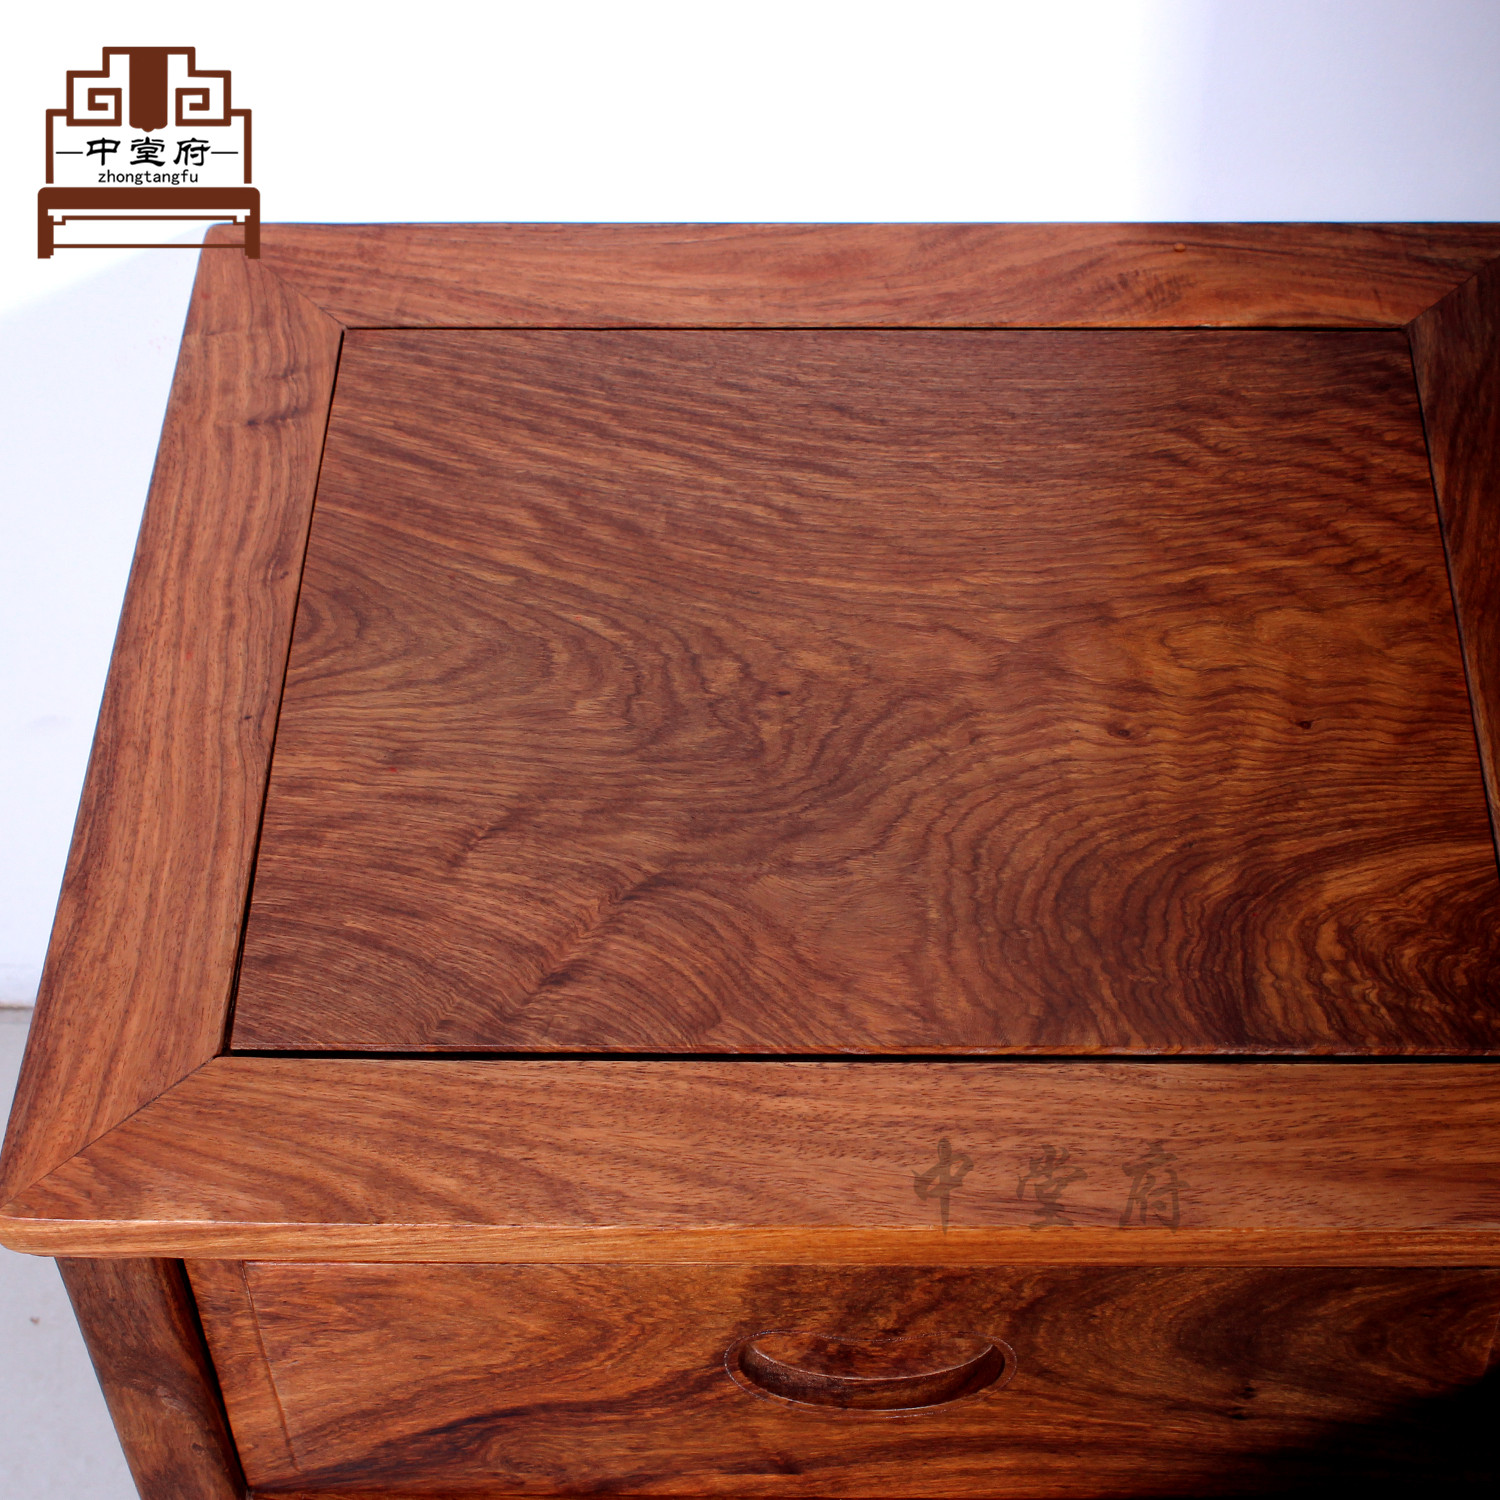 [government] Zhongtang rosewood furniture hedgehog rosewood rosewood wood double bed Chinese auspicious clouds